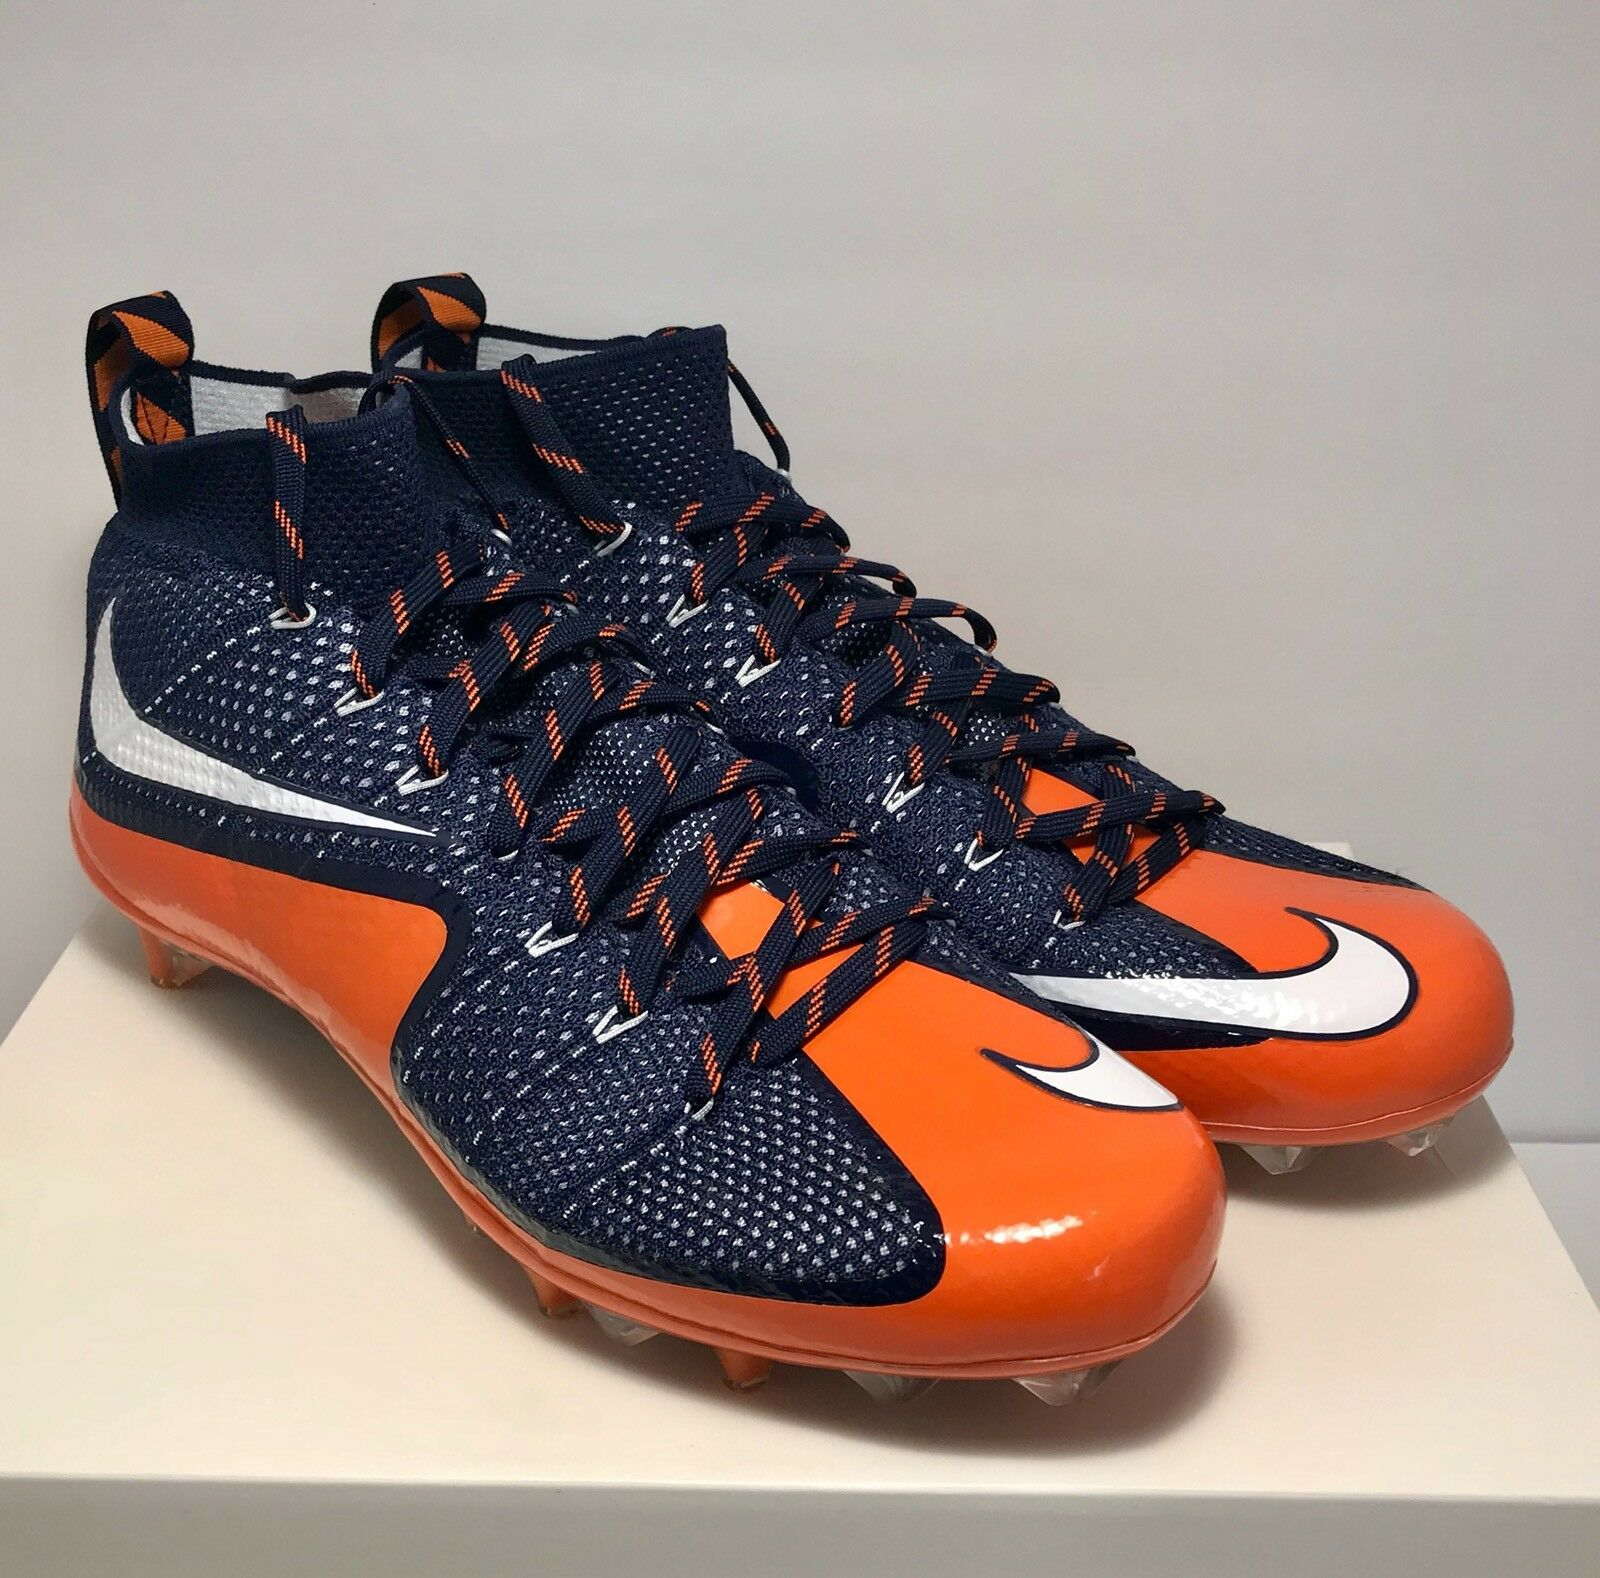 200 Nike Mens Size 13 Untouchable 1 Football Cleats Blue Orange New Rare